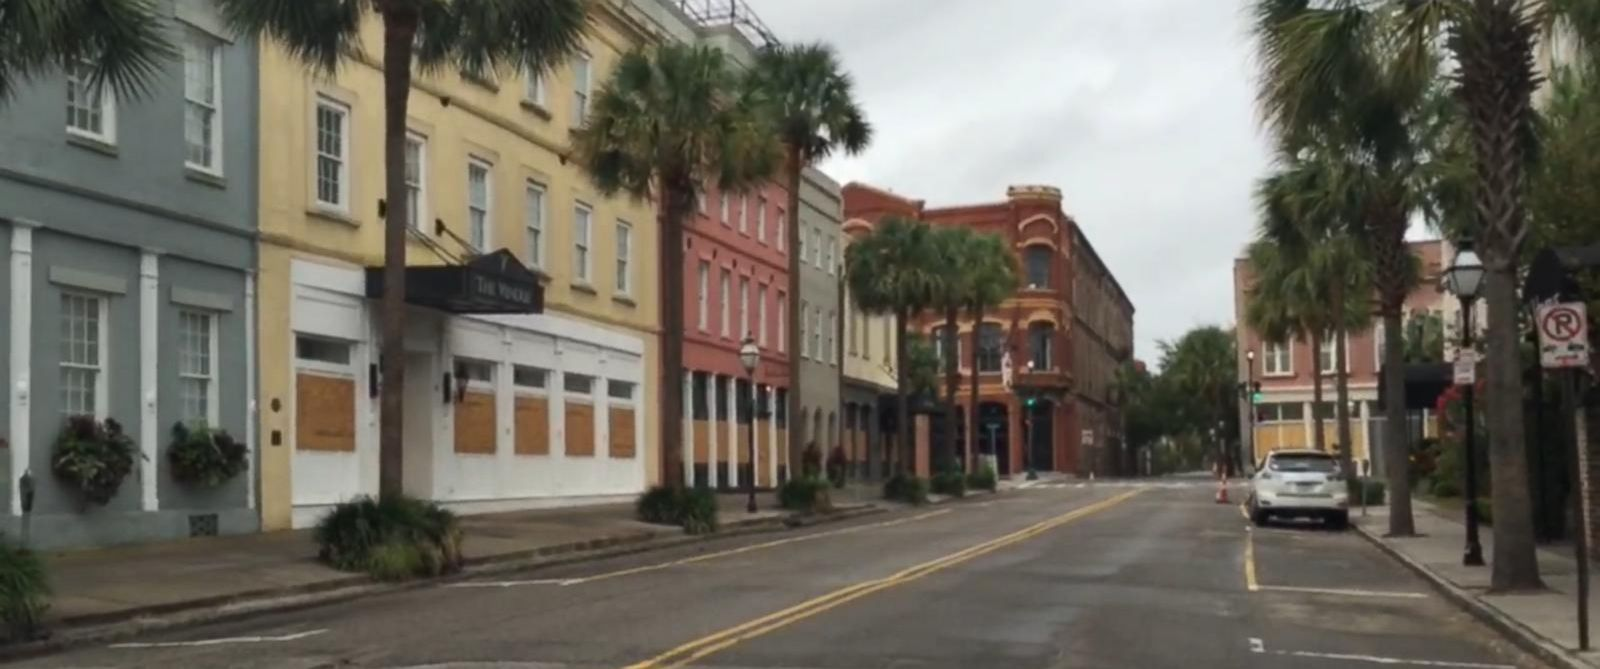 Hurricane Matthew Charleston Is A Ghost Town Ahead Of The